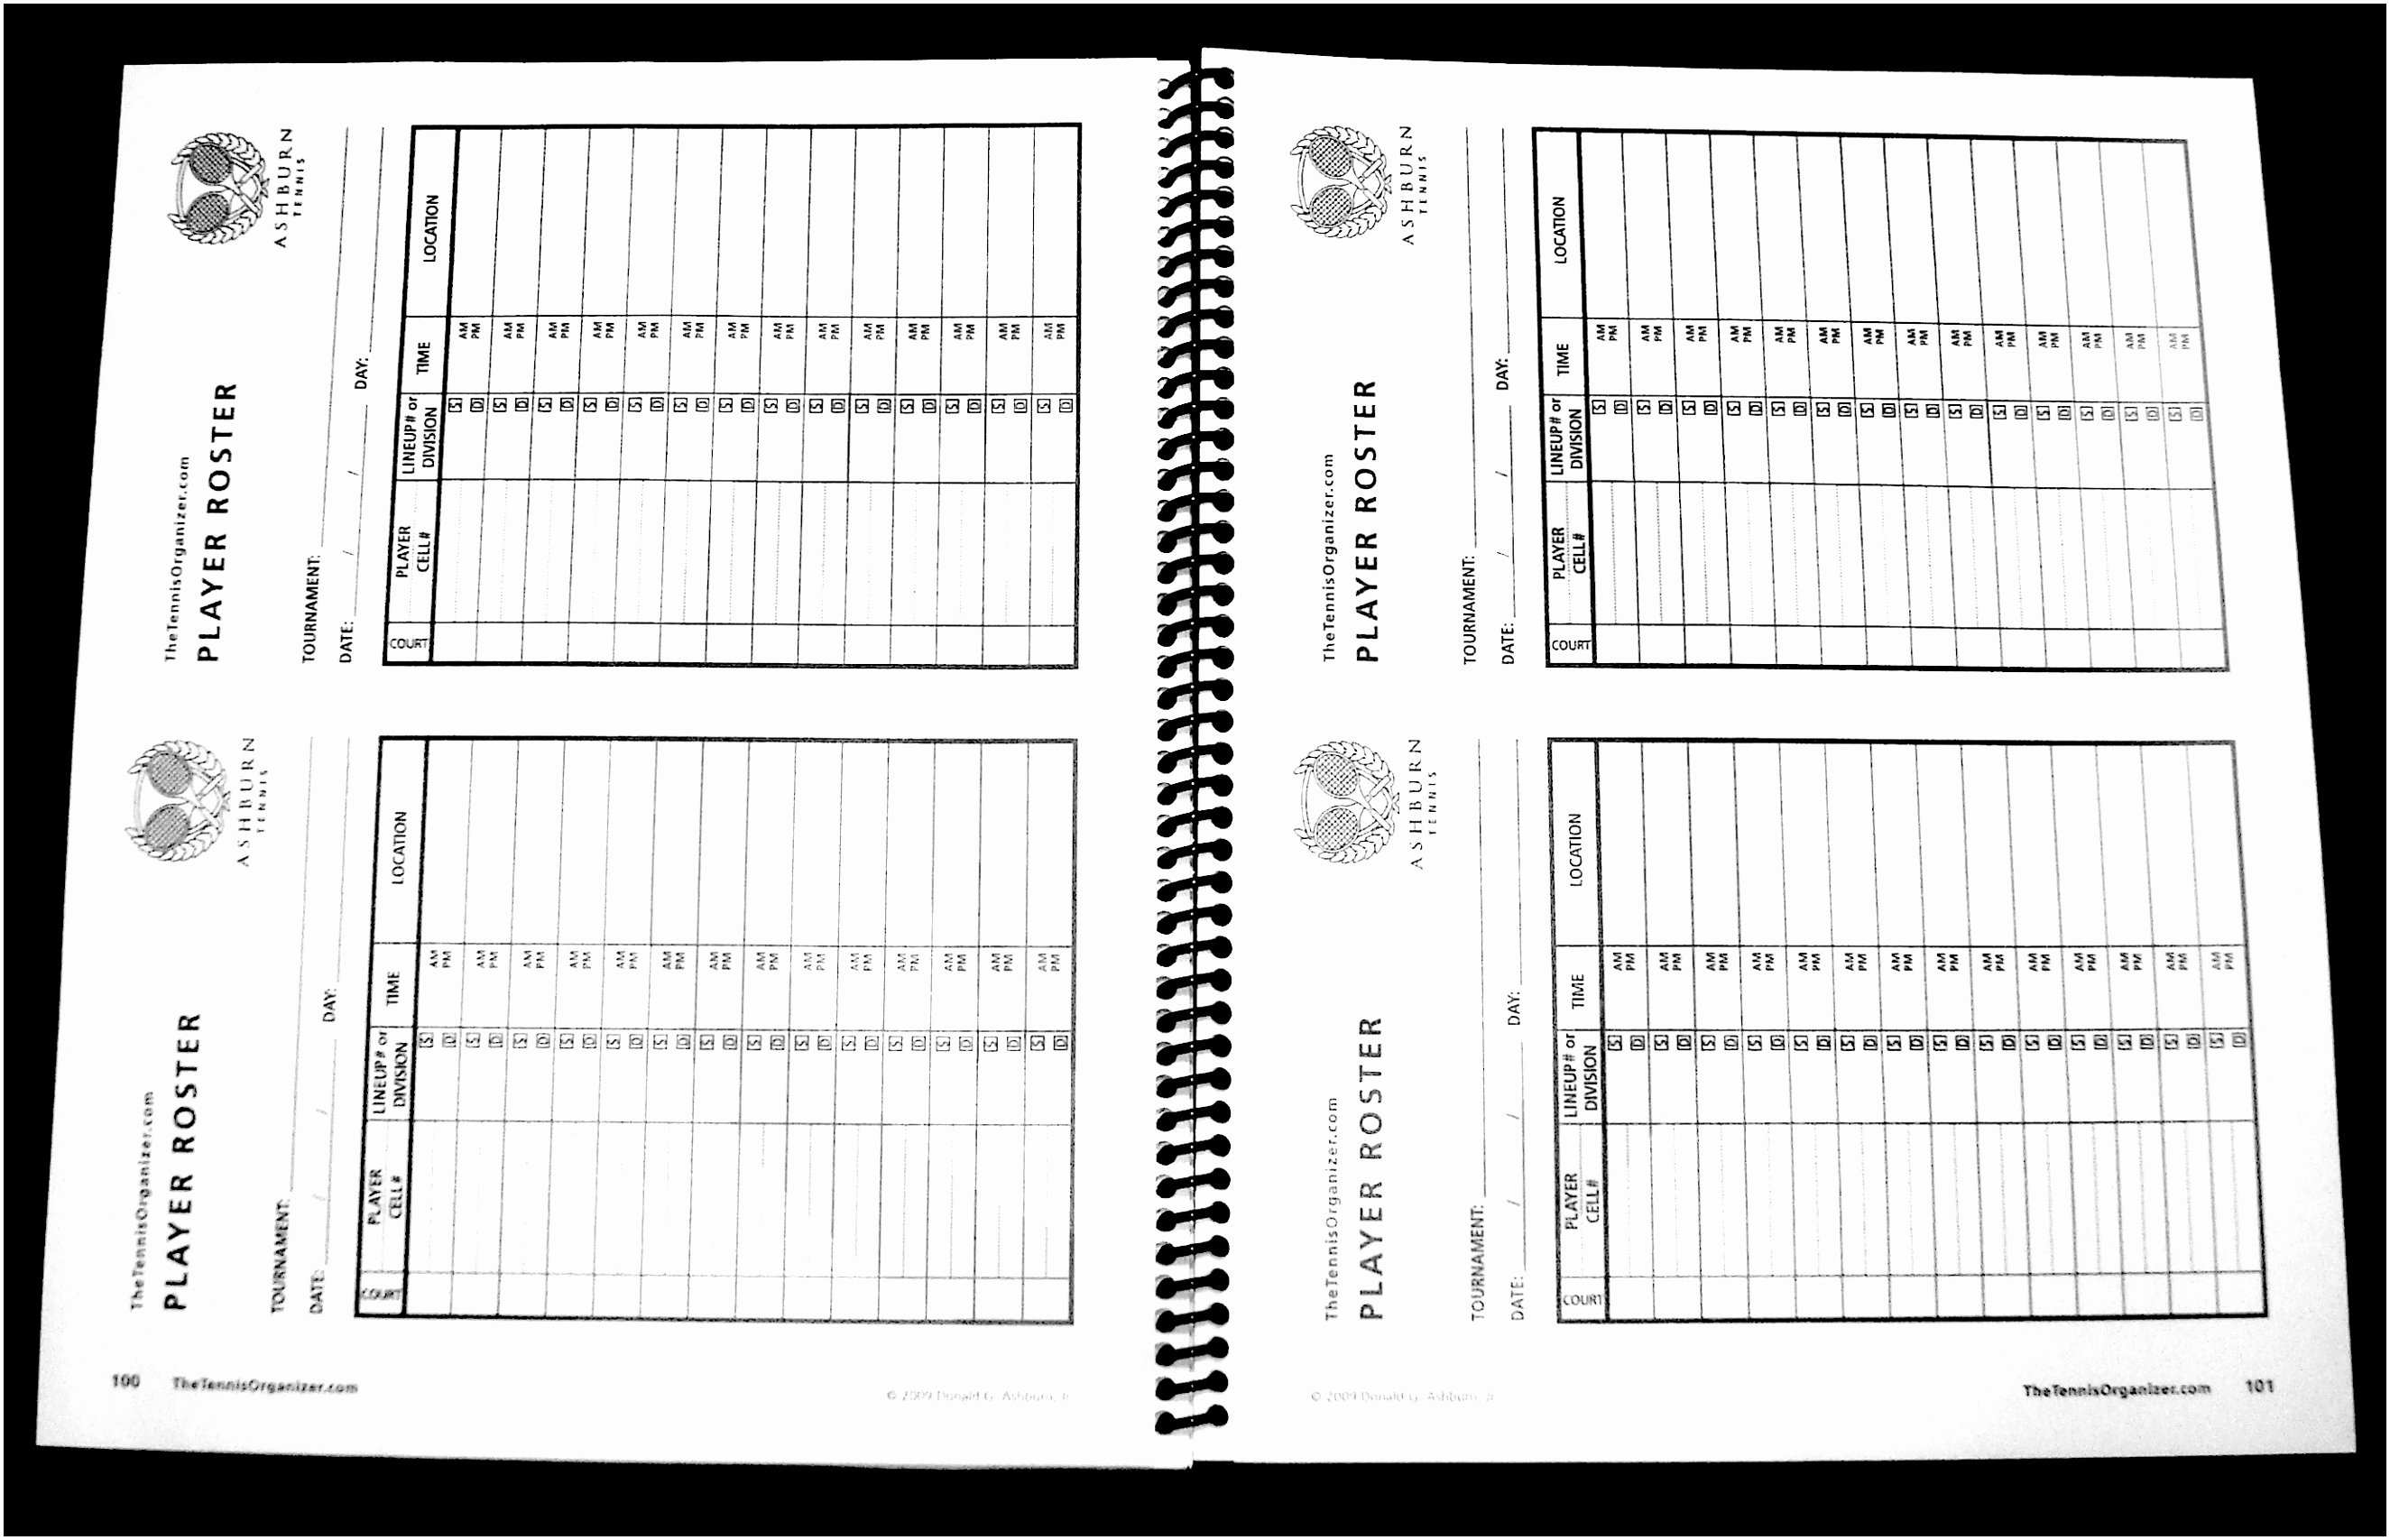 Football Depth Chart Template Excel New 5 Printable Football Depth Chart Template Yaouu